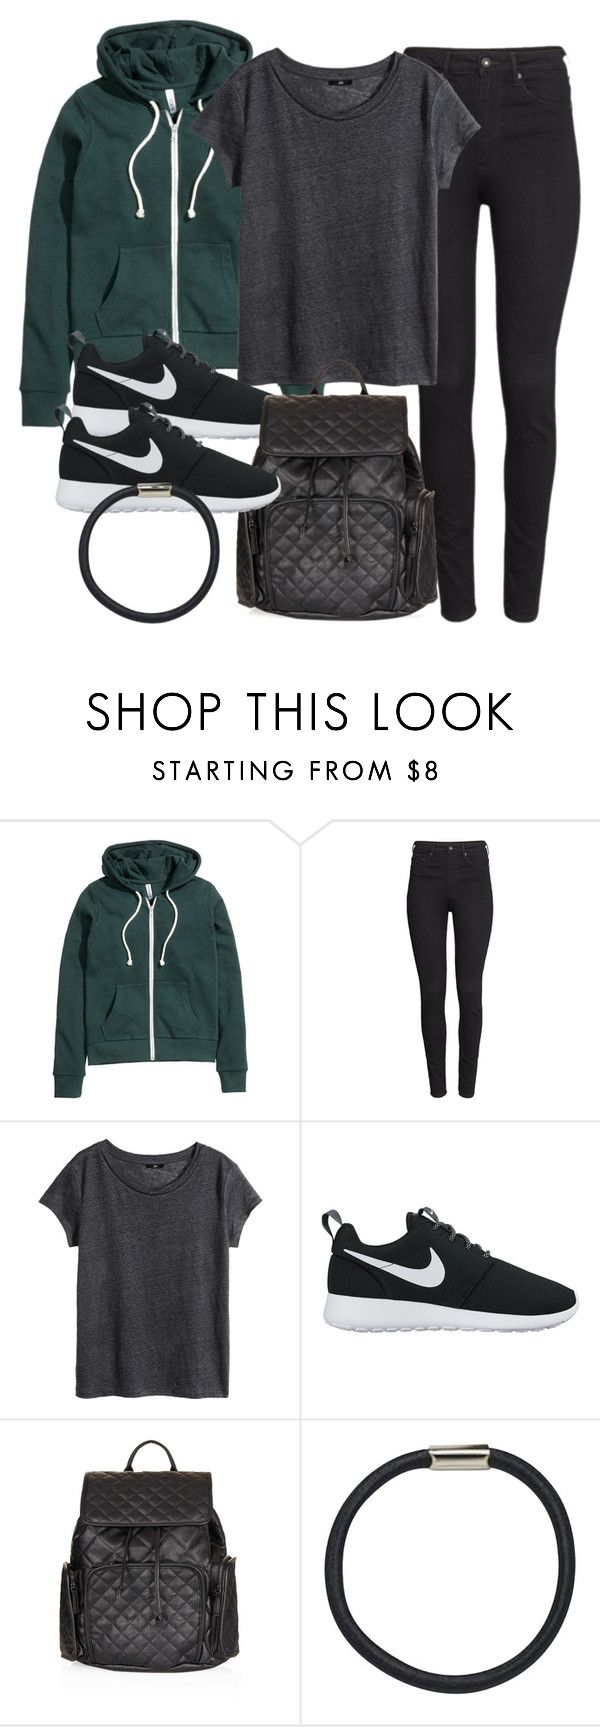 """""""School OOTD"""" by vany-alvarado ❤ liked on Polyvore featuring H&M, NIKE, Topshop and Hershesons"""